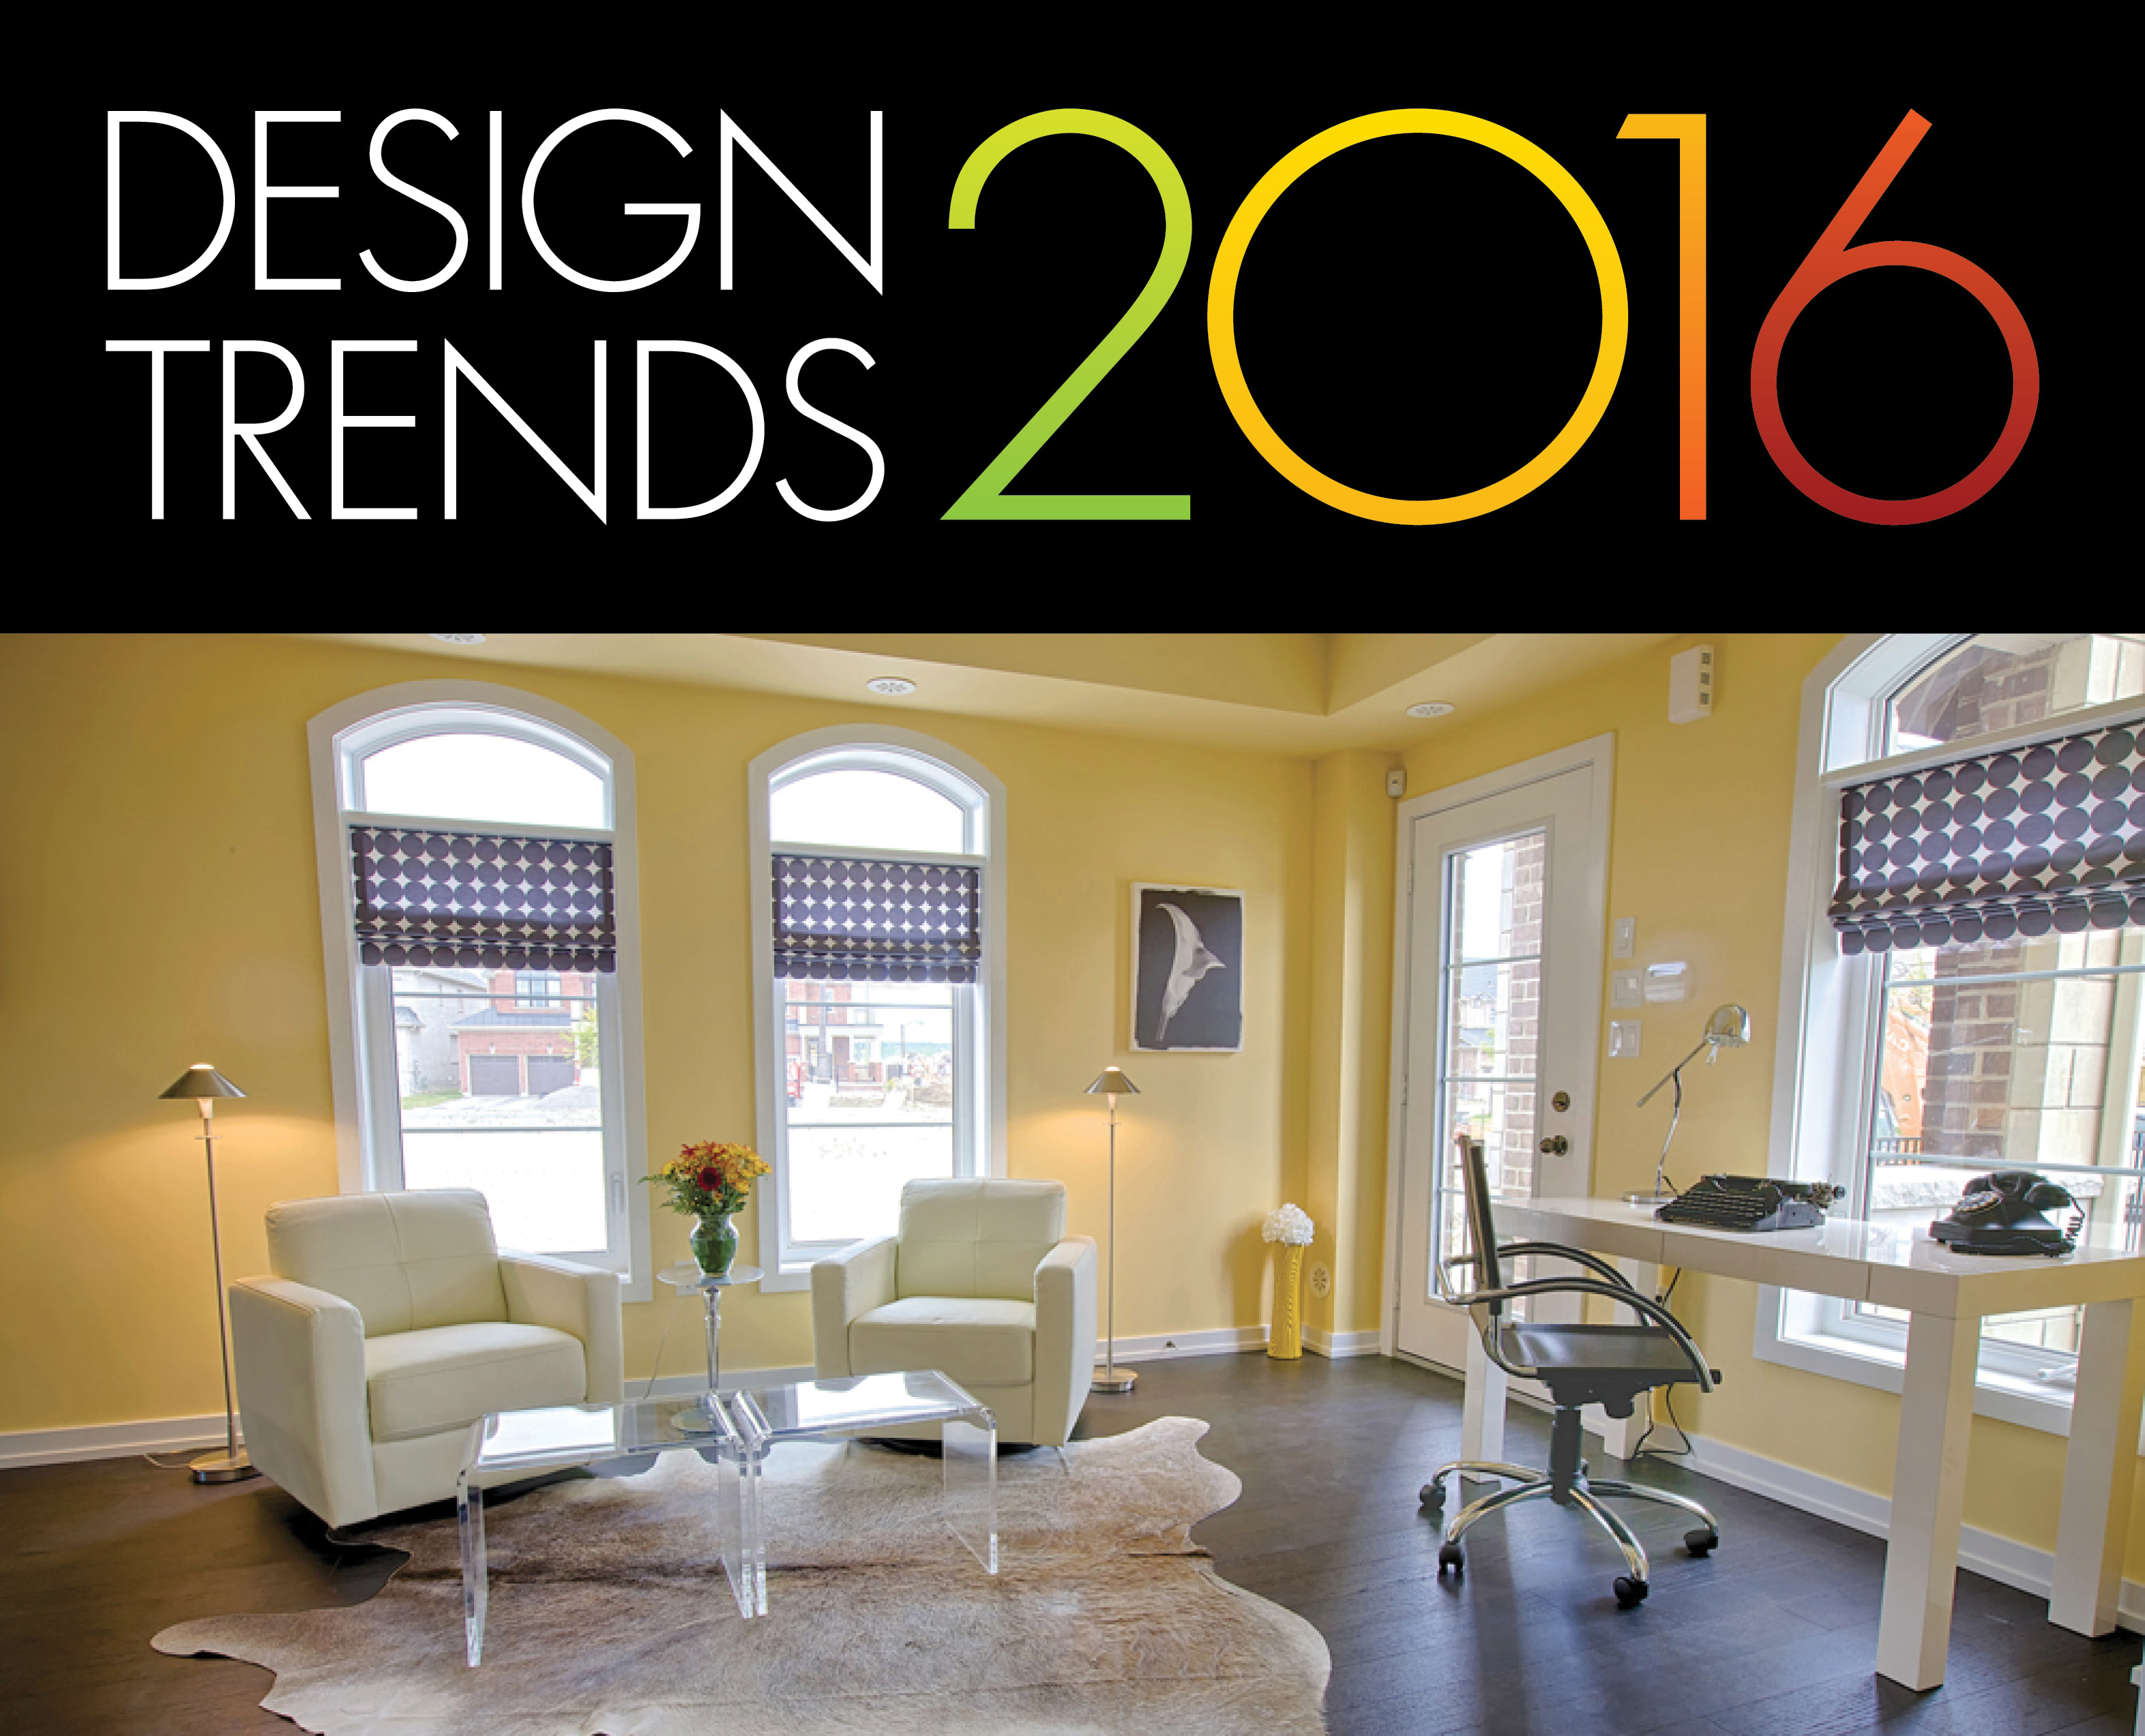 Six Home Décor Trends for 2016 | Geranium Blog